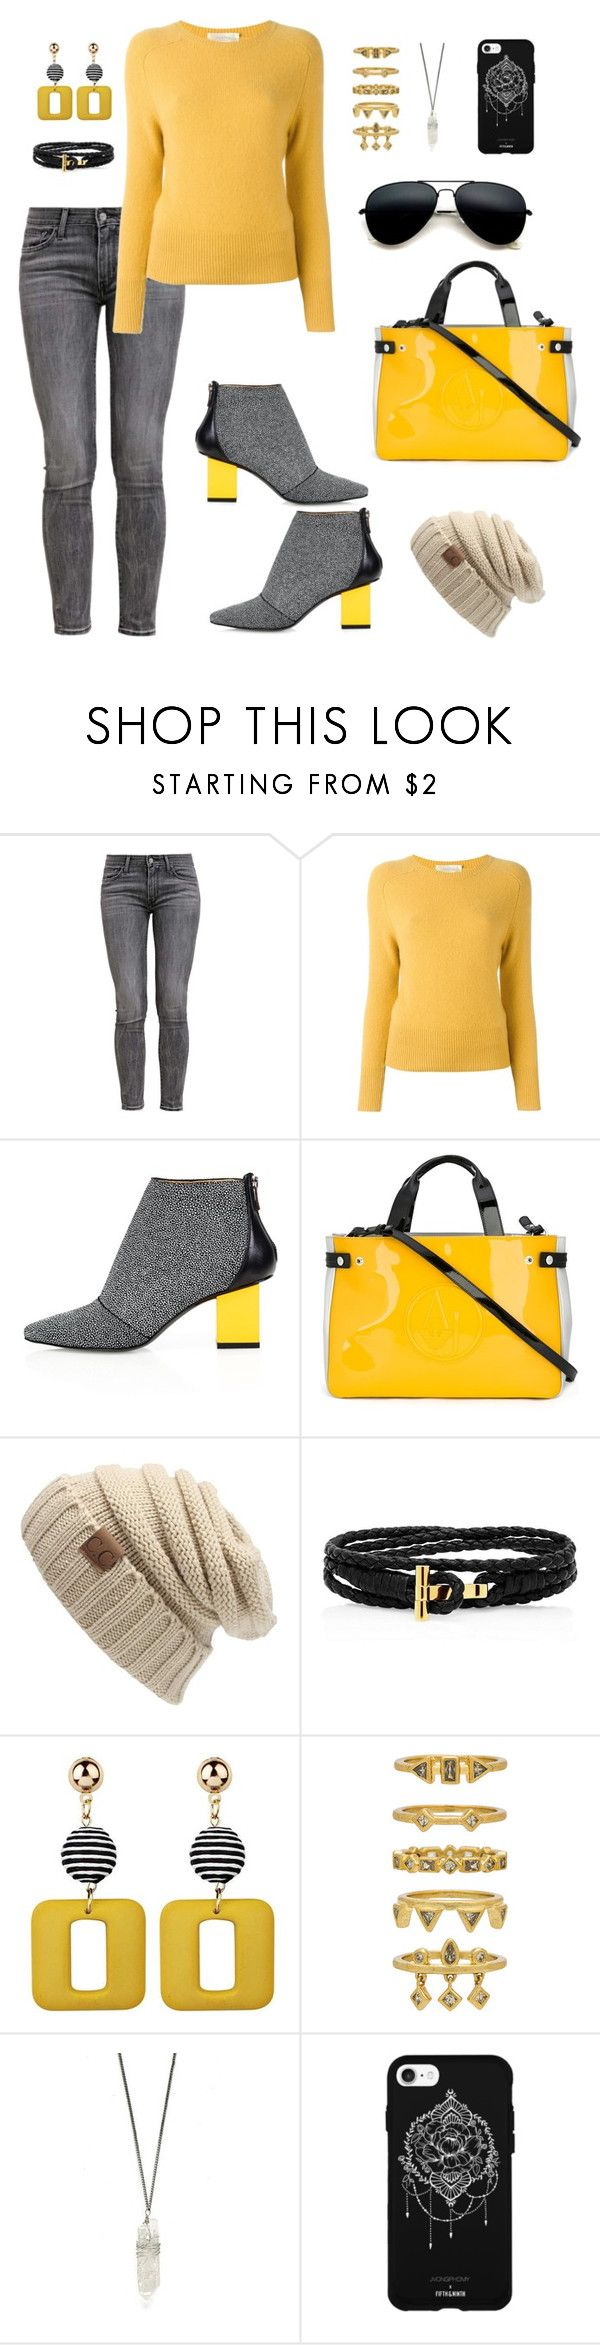 """""""Untitled #70"""" by shaim98 ❤ liked on Polyvore featuring Levi's, Zanone, Kim Kwang, Armani Jeans, Luv Aj and Fifth & Ninth"""